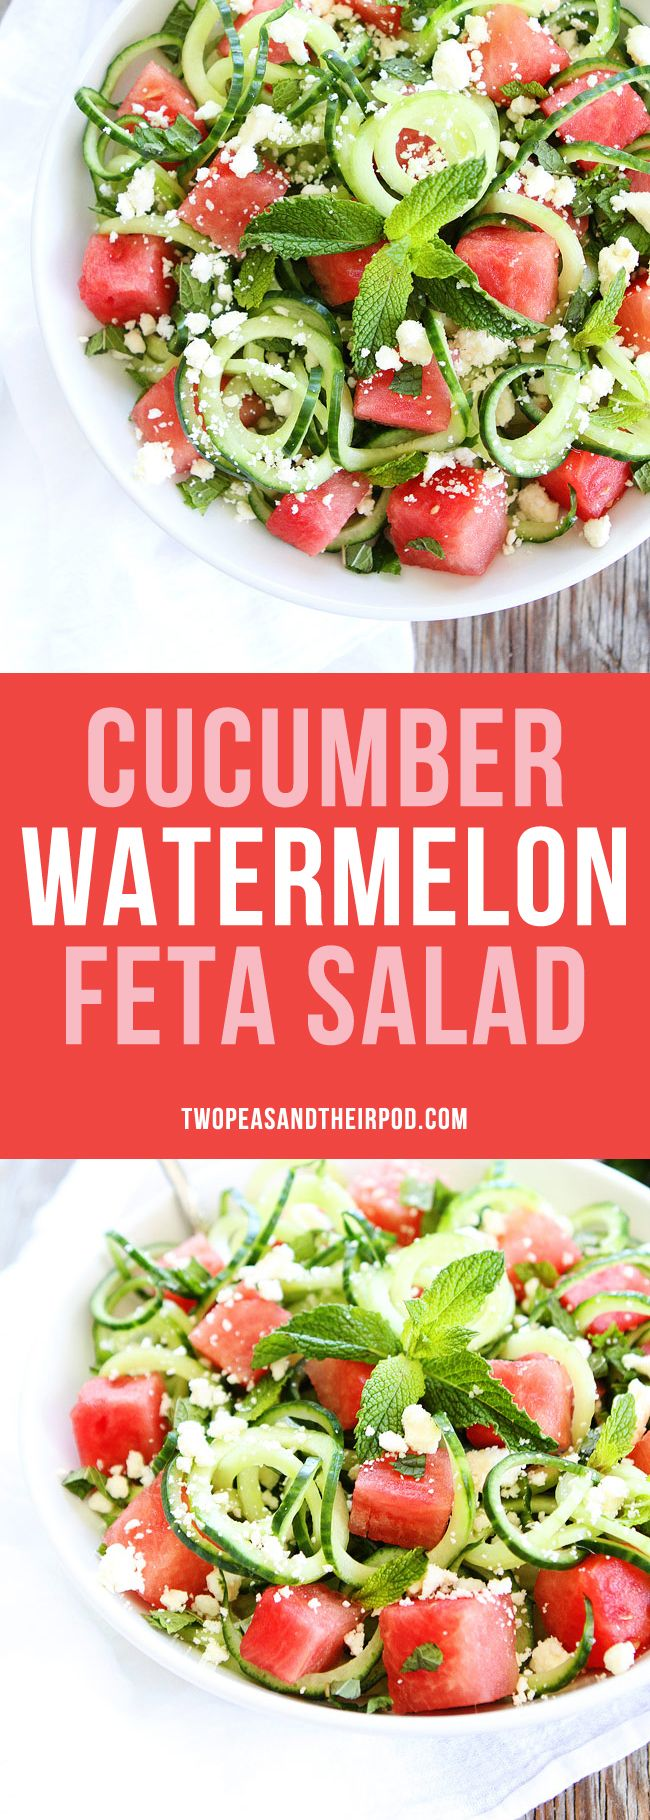 Cucumber Watermelon Feta Salad made with cucumber noodles. This fun and refreshing summer salad is perfect for potlucks, picnics, and barbecues.